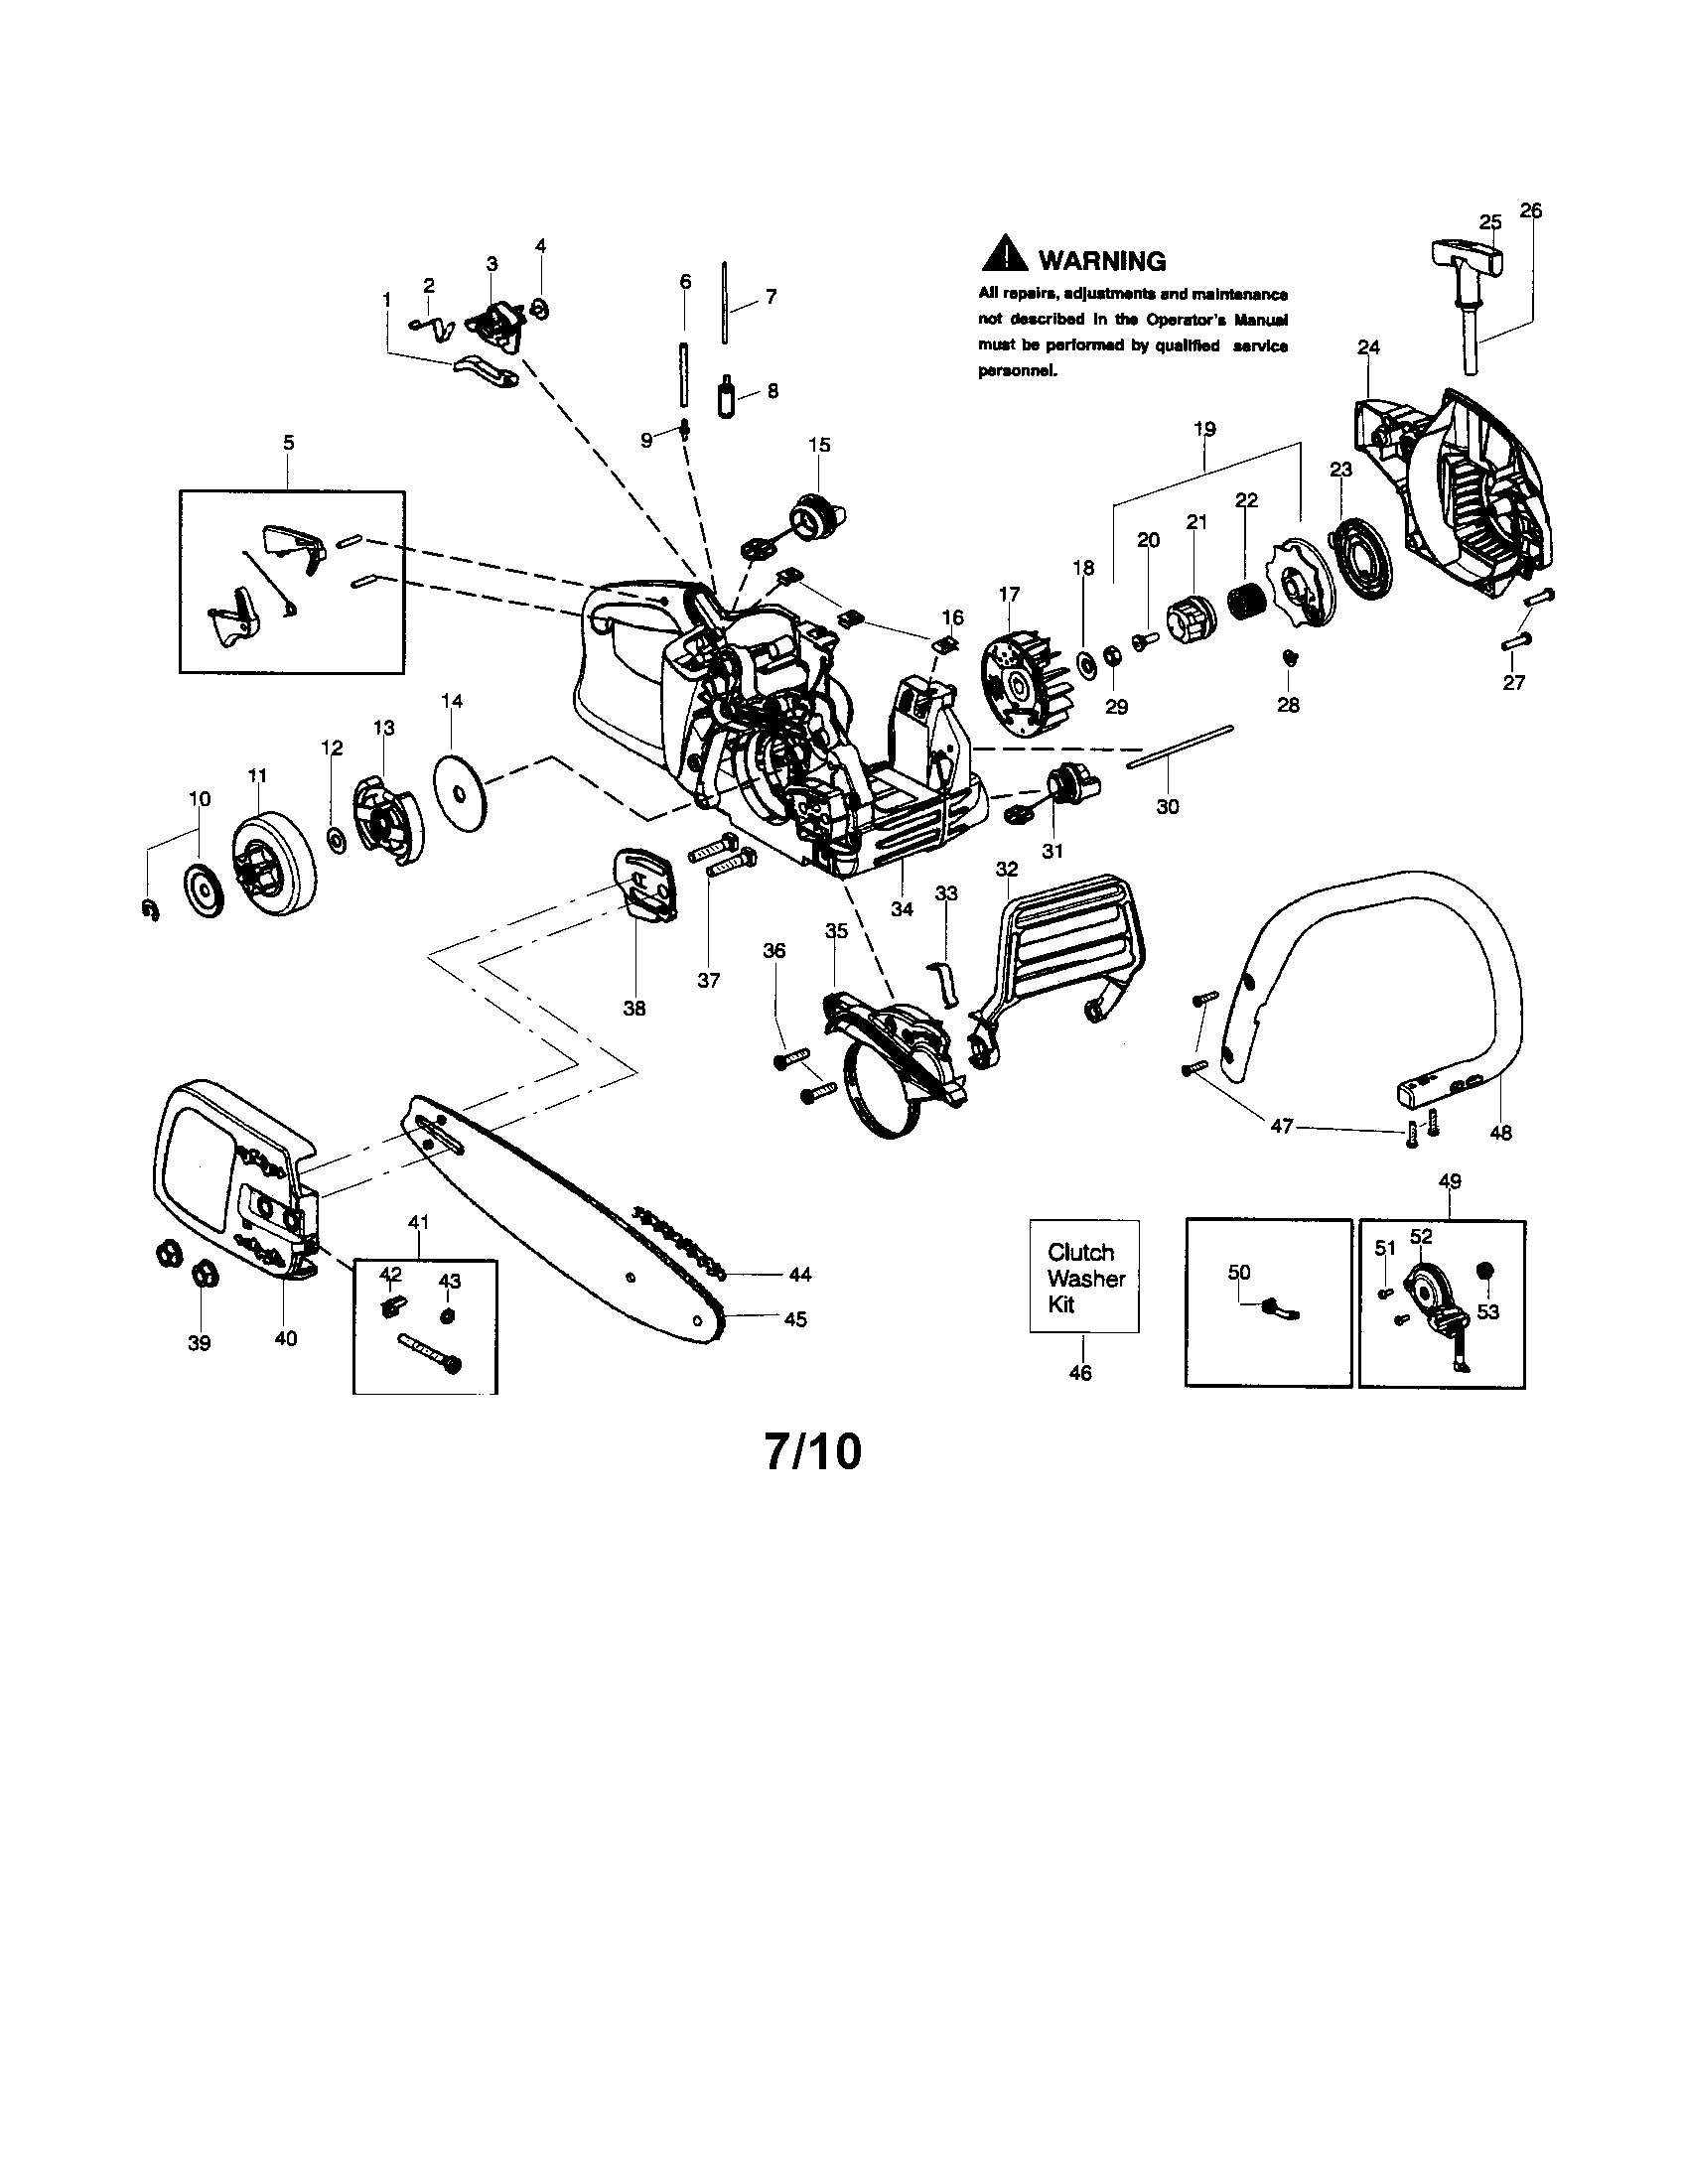 Mcculloch 3200 Chainsaw Fuel Line Diagram Ford Diagrams